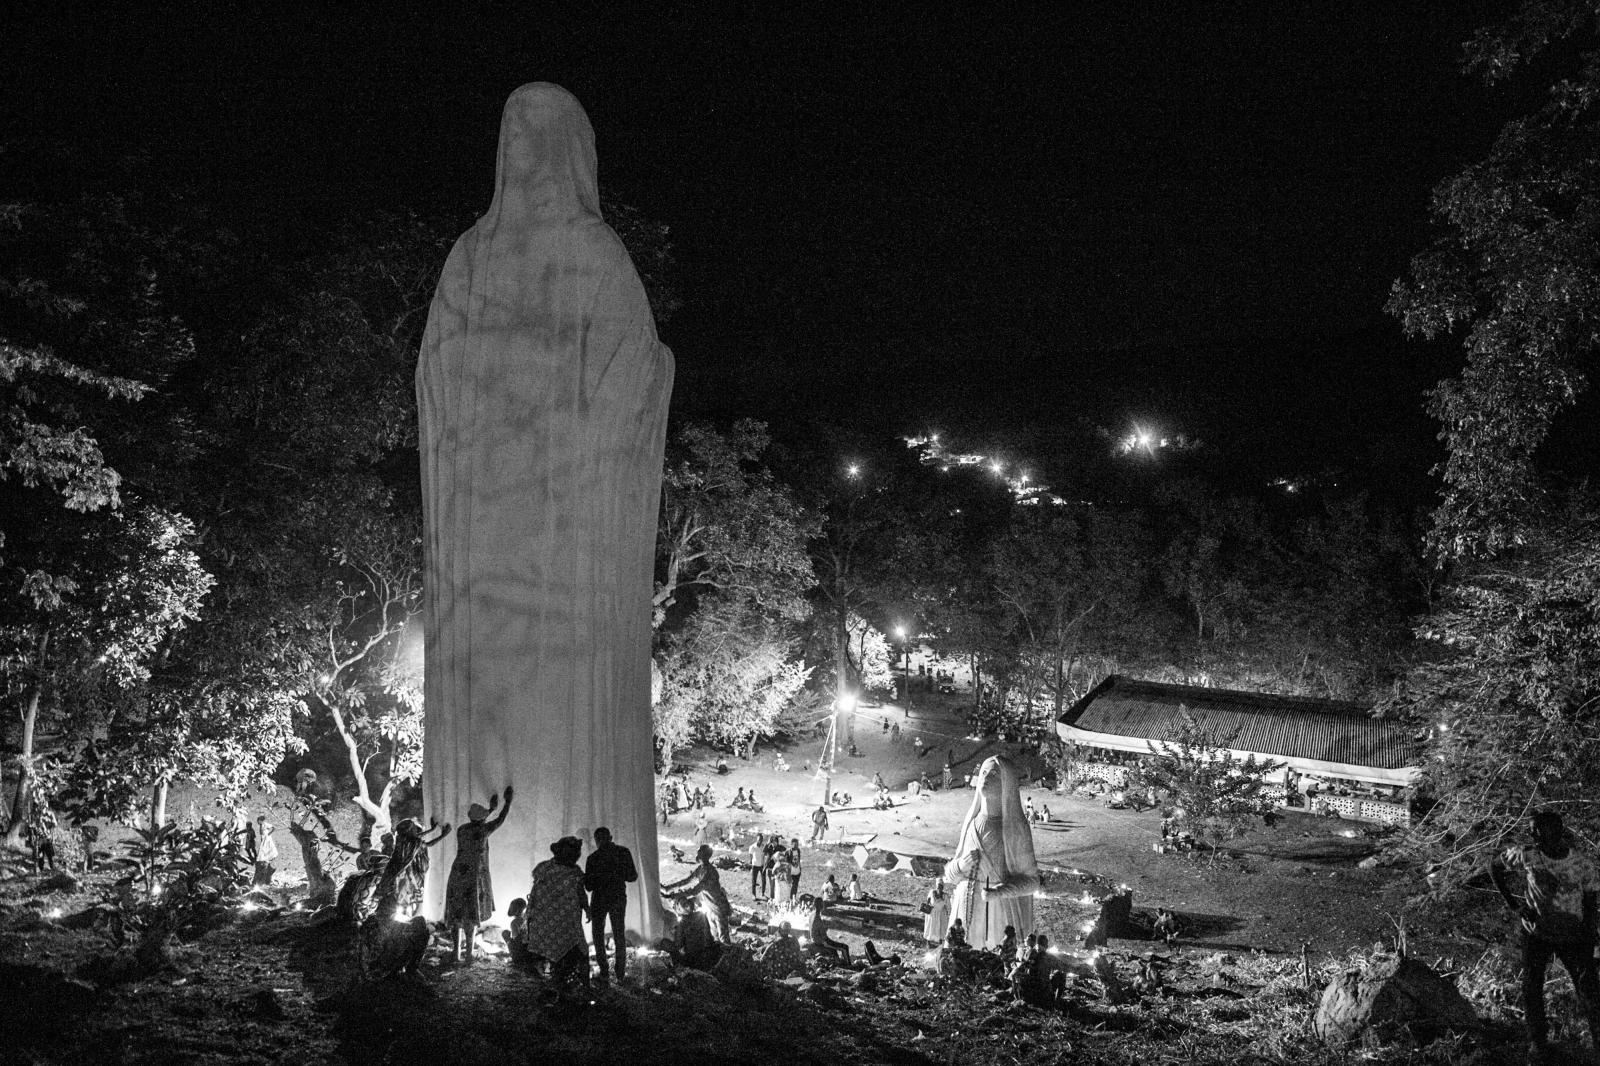 Pilgrims touch a giant statue of Maria to pray, the mother of Jesus the centrepiece of worship at the Our Lady of Lourdes grotto.